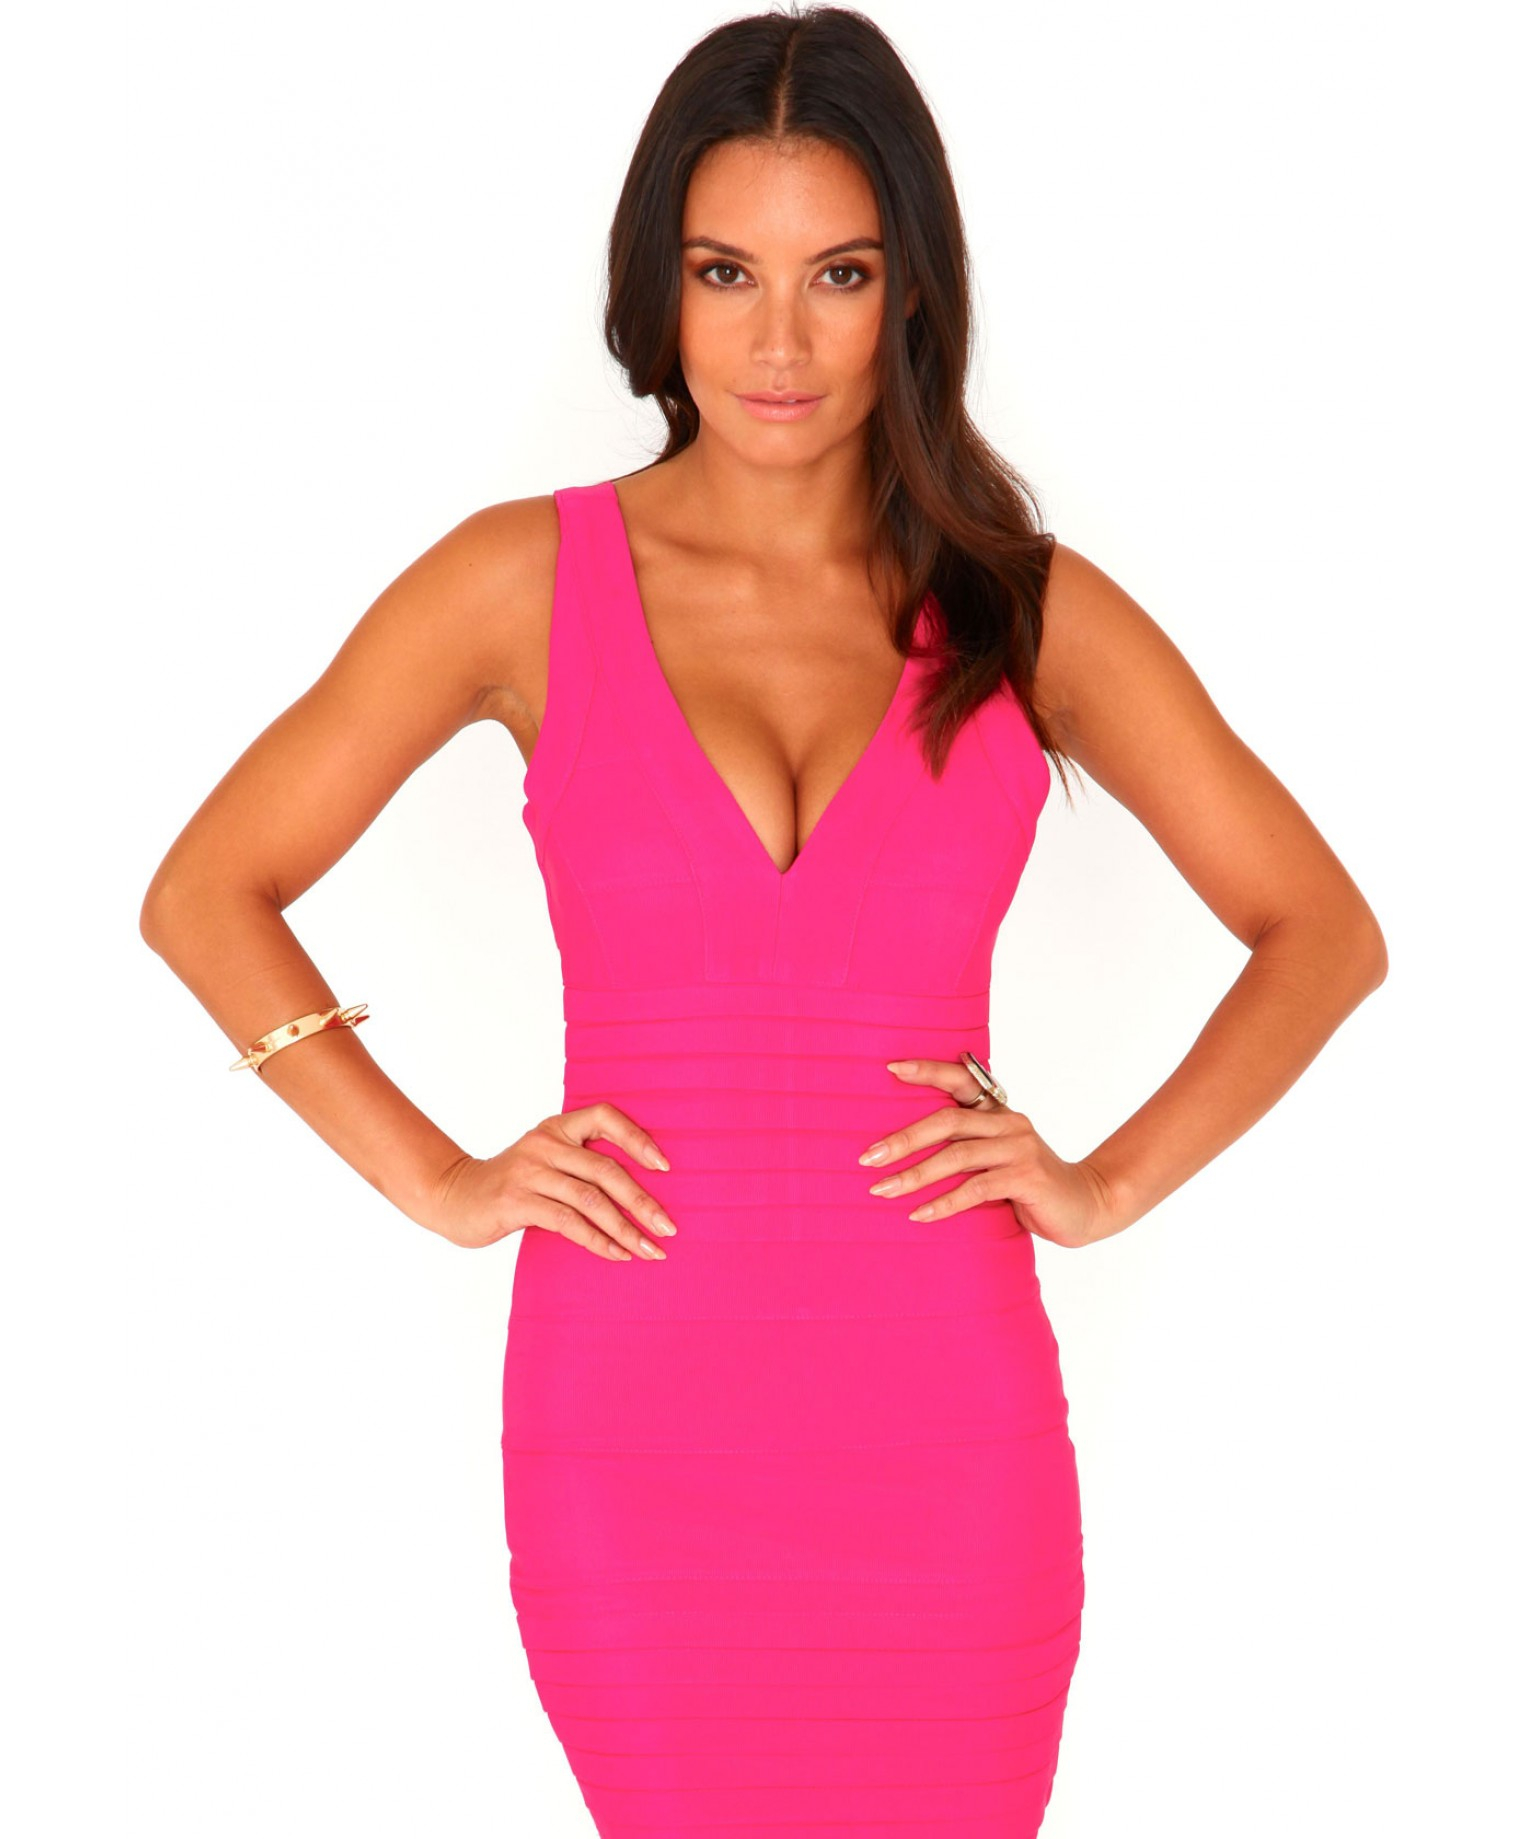 Missguided Leena Bandage Bodycon Dress In Neon Pink in Pink | Lyst